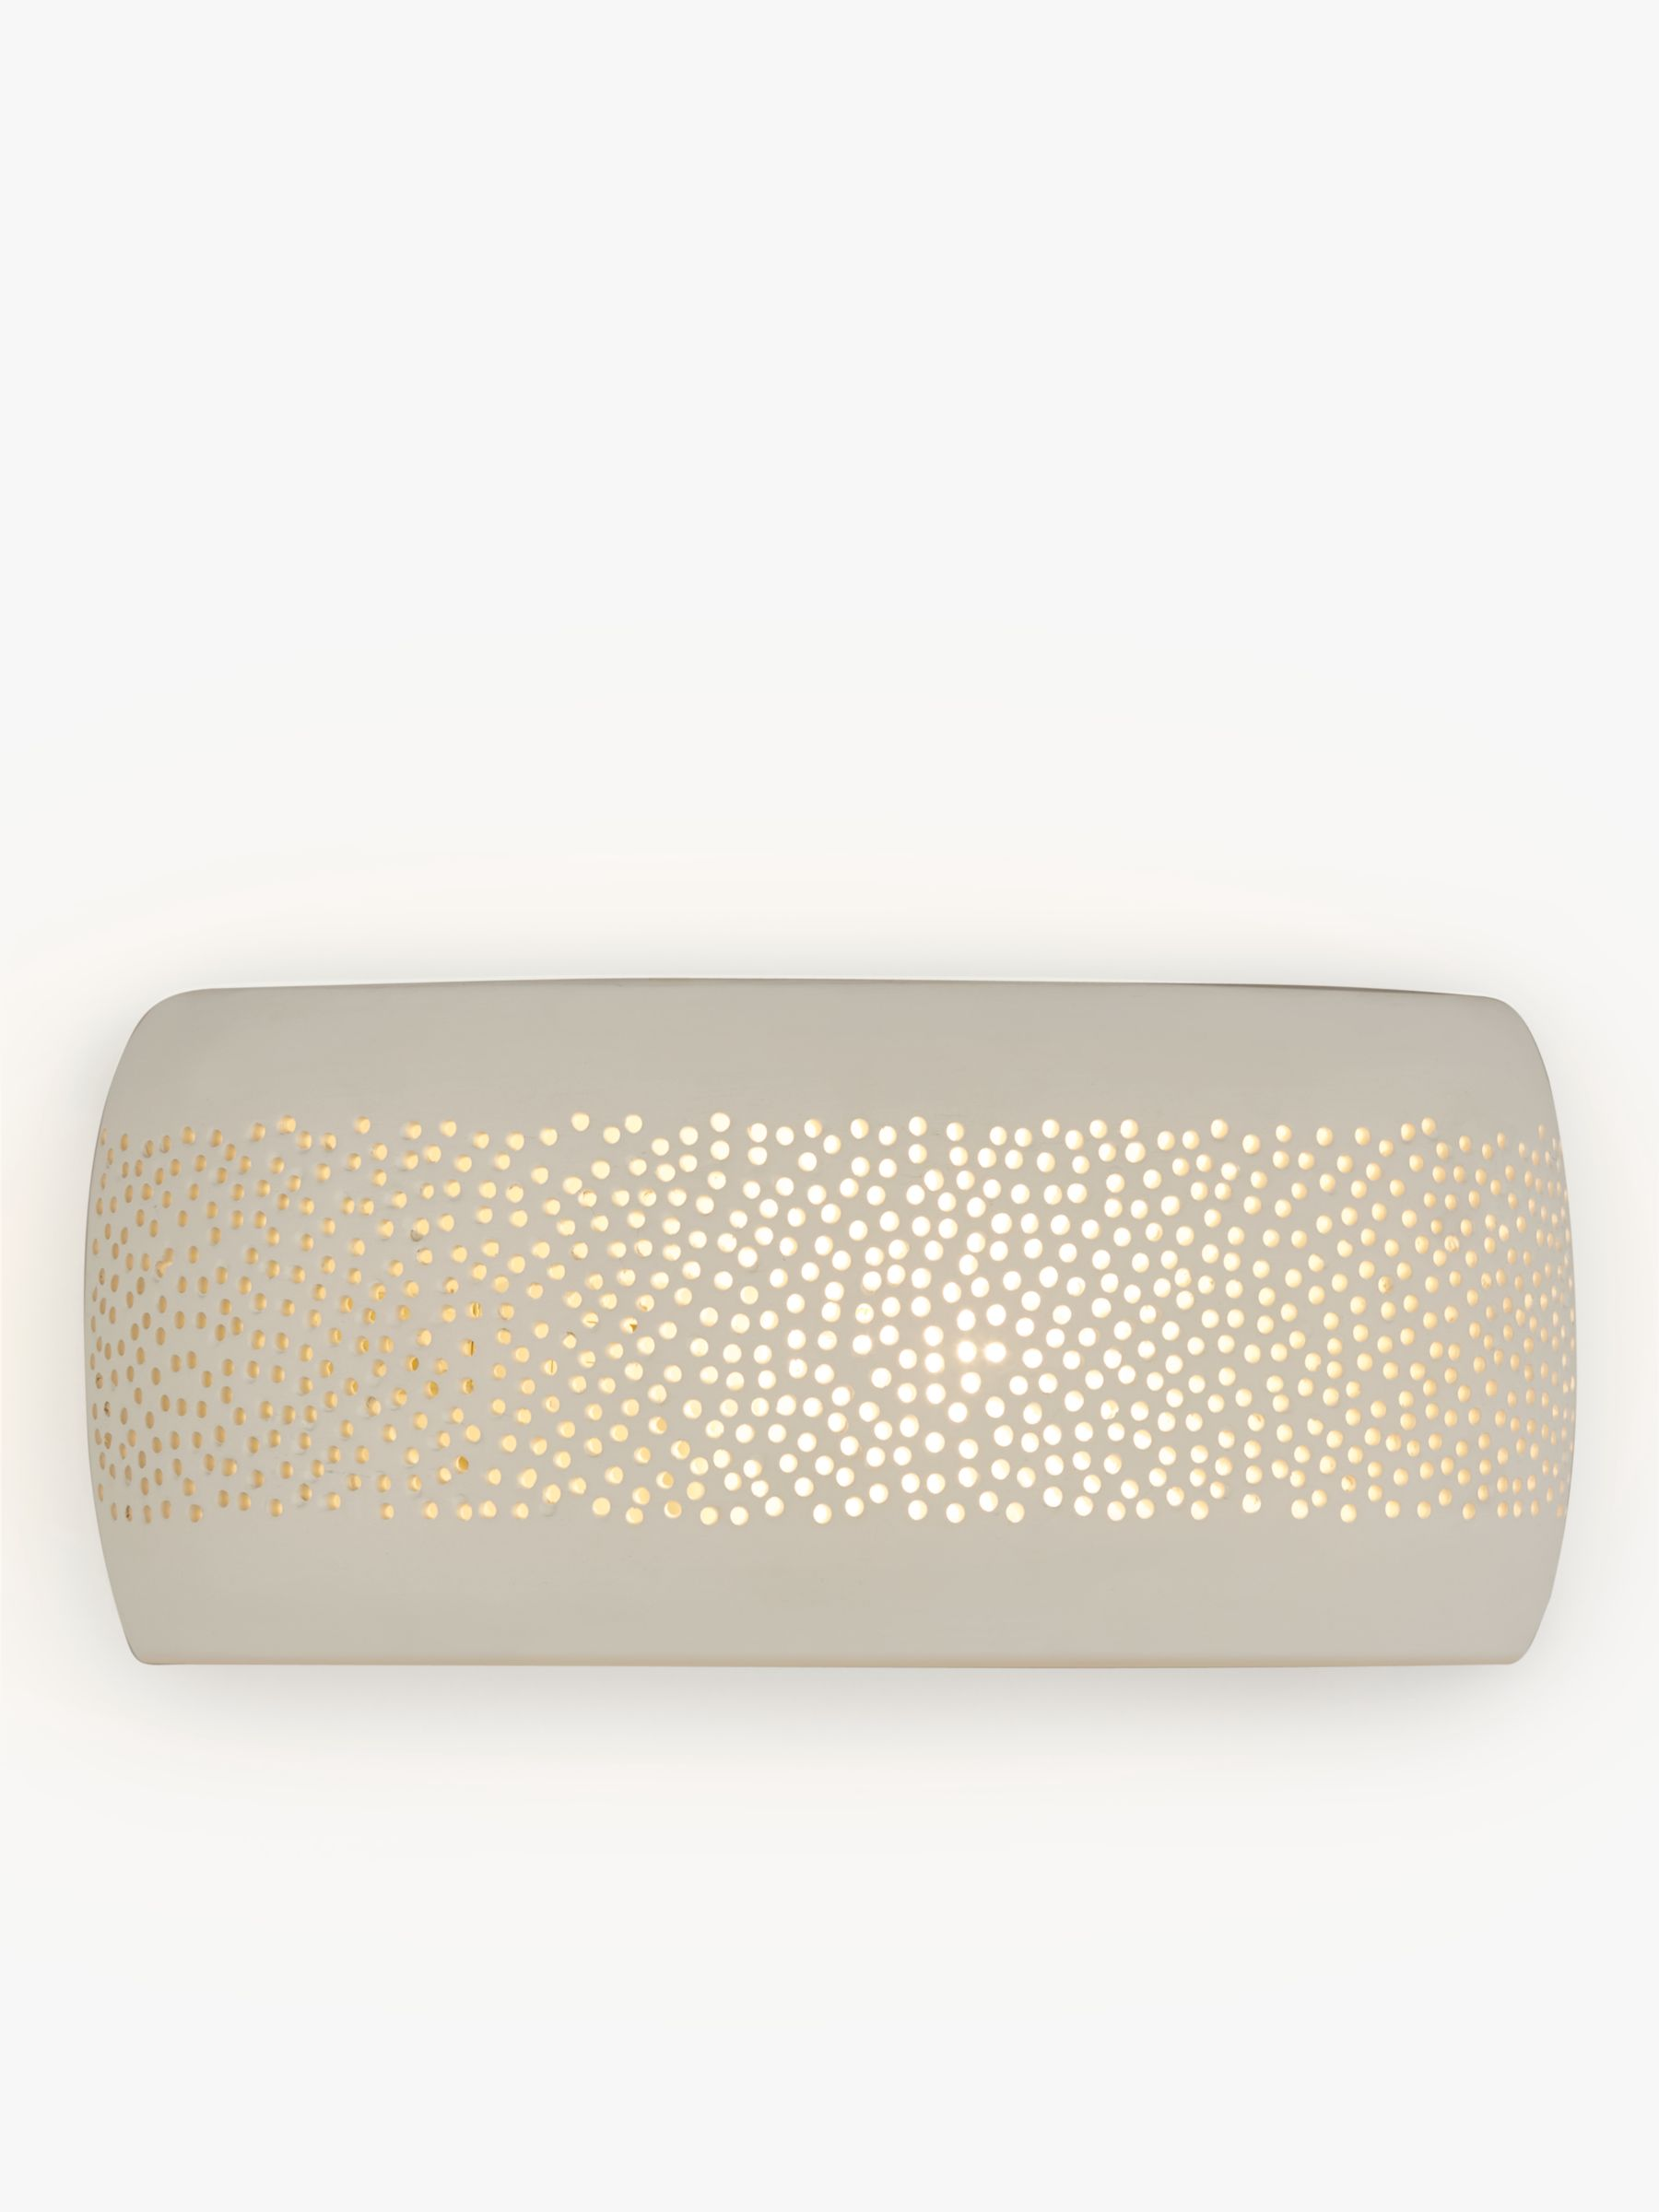 Amalfi Wall Light John Lewis : Remarkable Wall Lights John Lewis Pictures - Best inspiration home design - eumolp.us